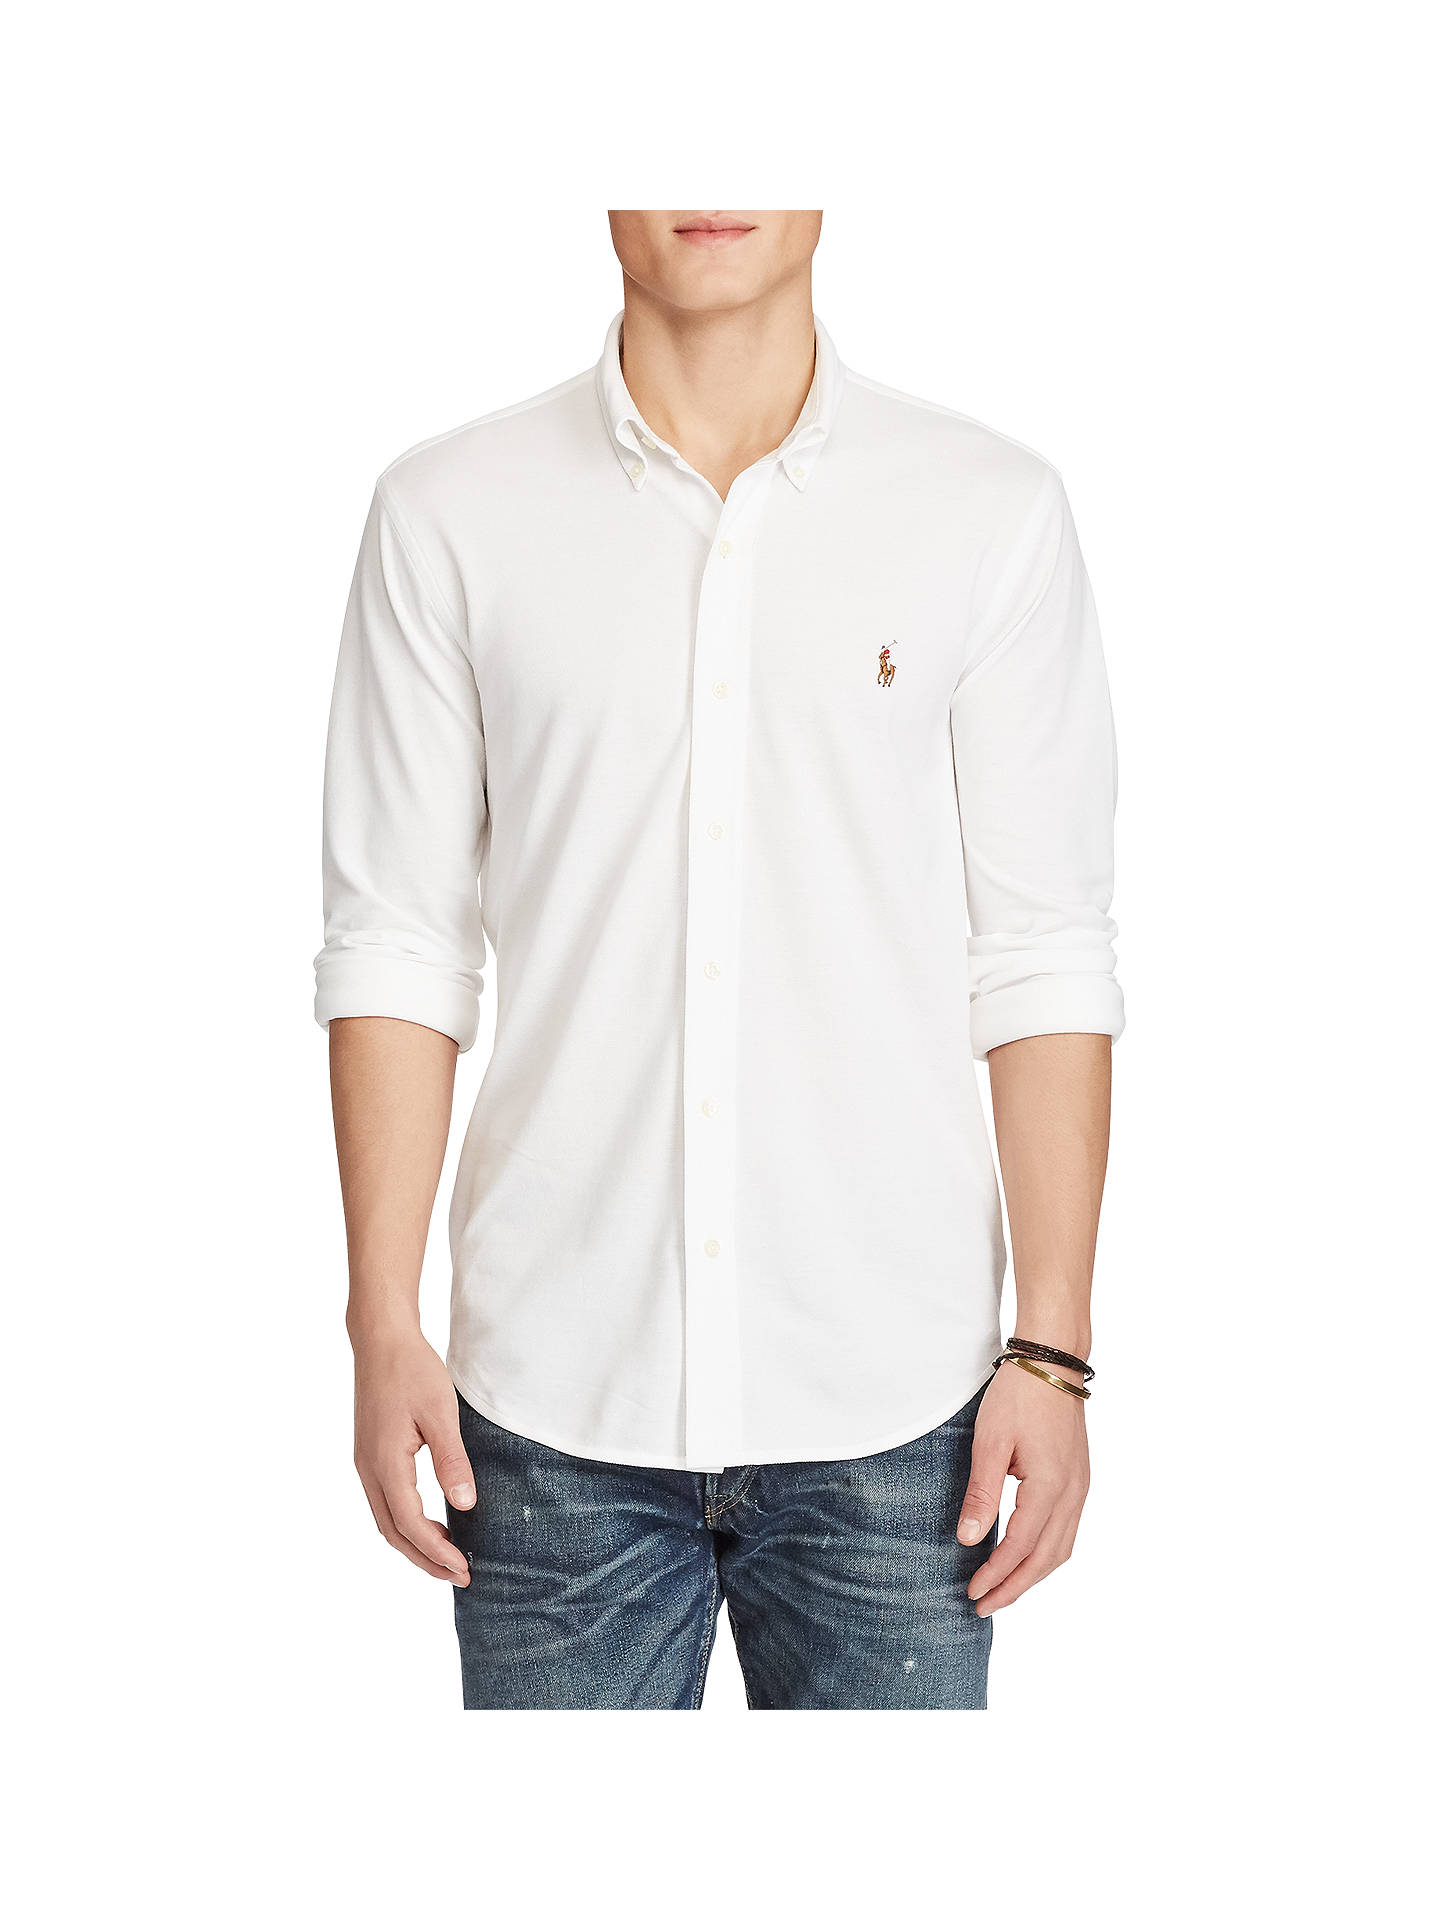 BuyPolo Ralph Lauren Knit Oxford Shirt, White, M Online at johnlewis.com ... f6d4b45f8804